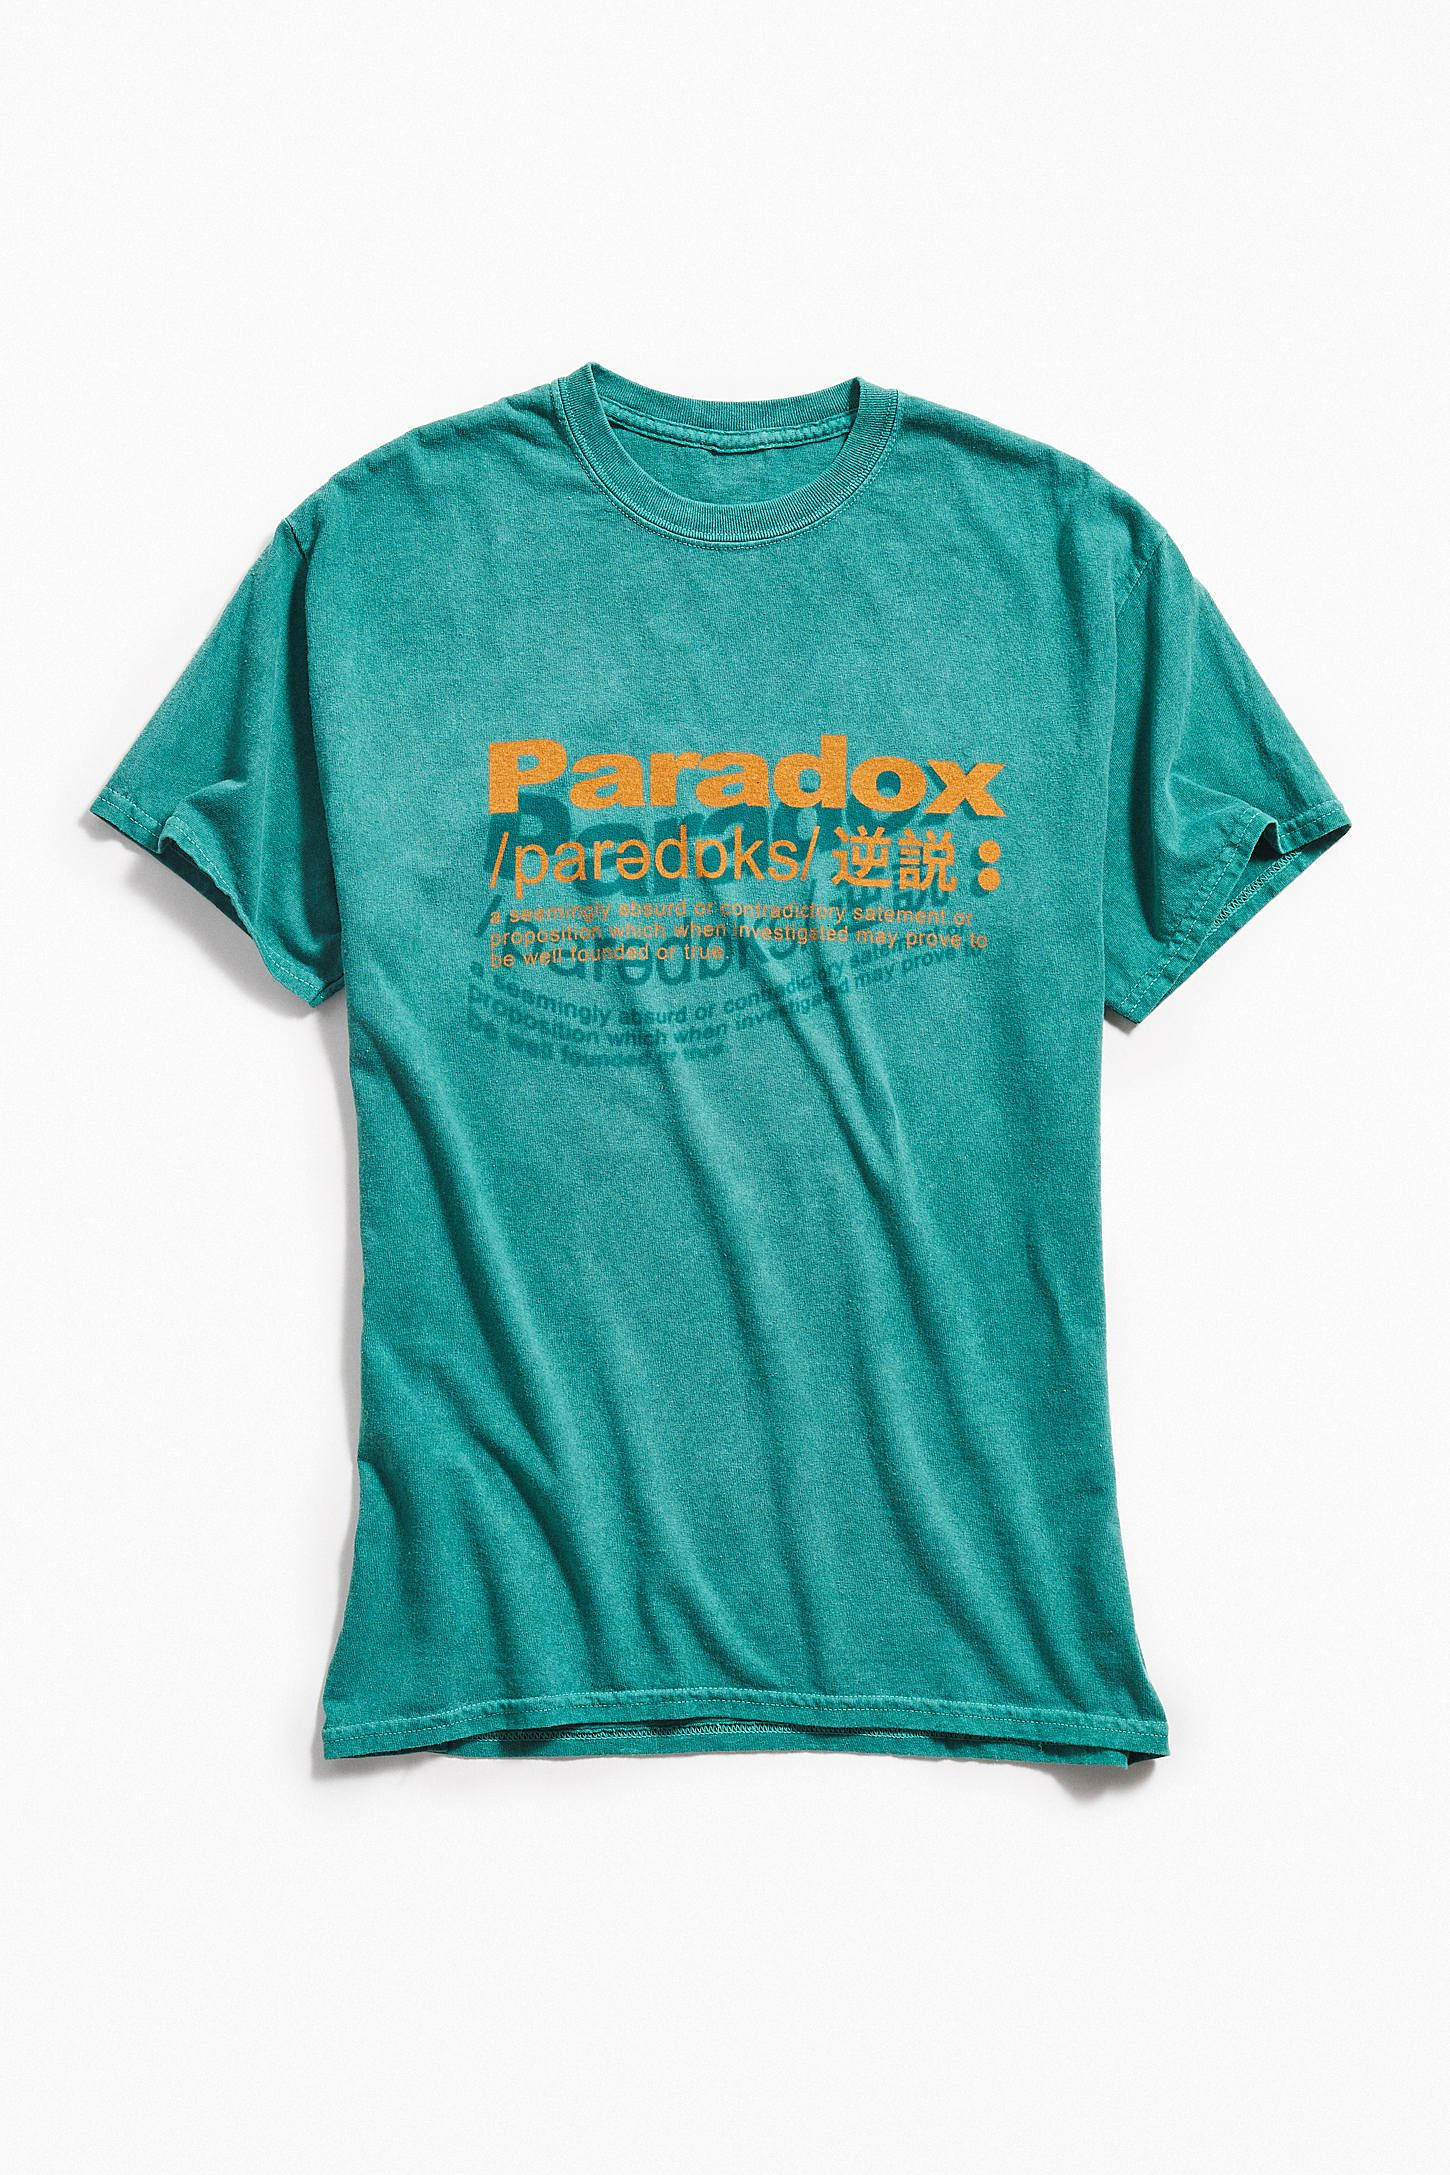 c6d7c48916 Paradox Definition Tee in 2019 | Shirts | Mens tops, Paradox, Tees